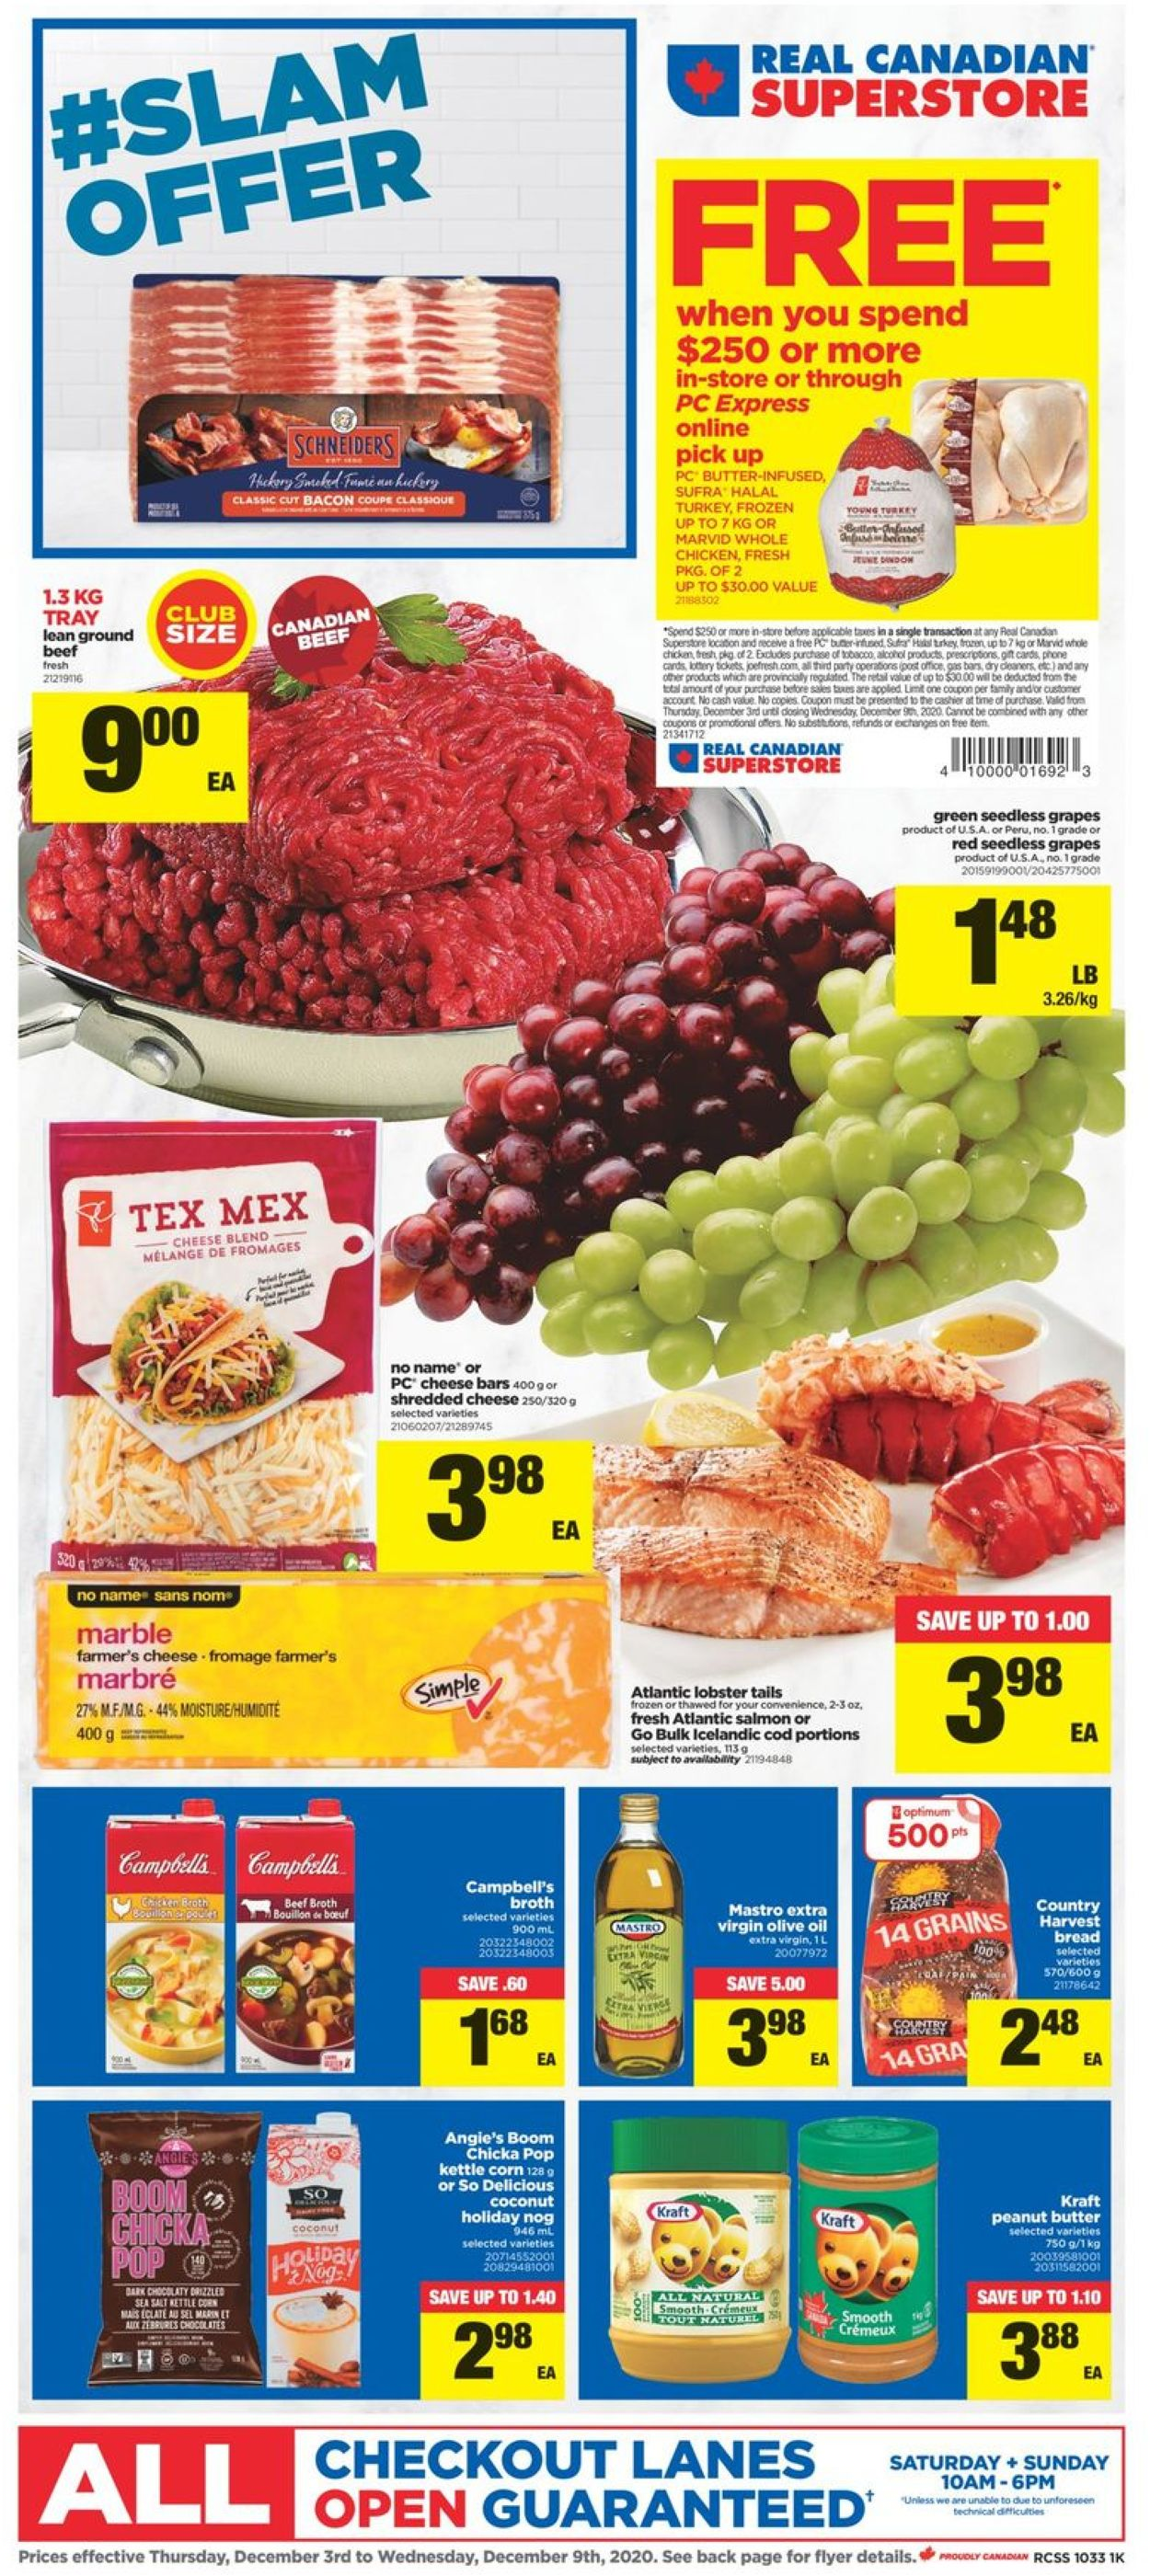 Real Canadian Superstore - Holiday 2020 Flyer - 12/03-12/09/2020